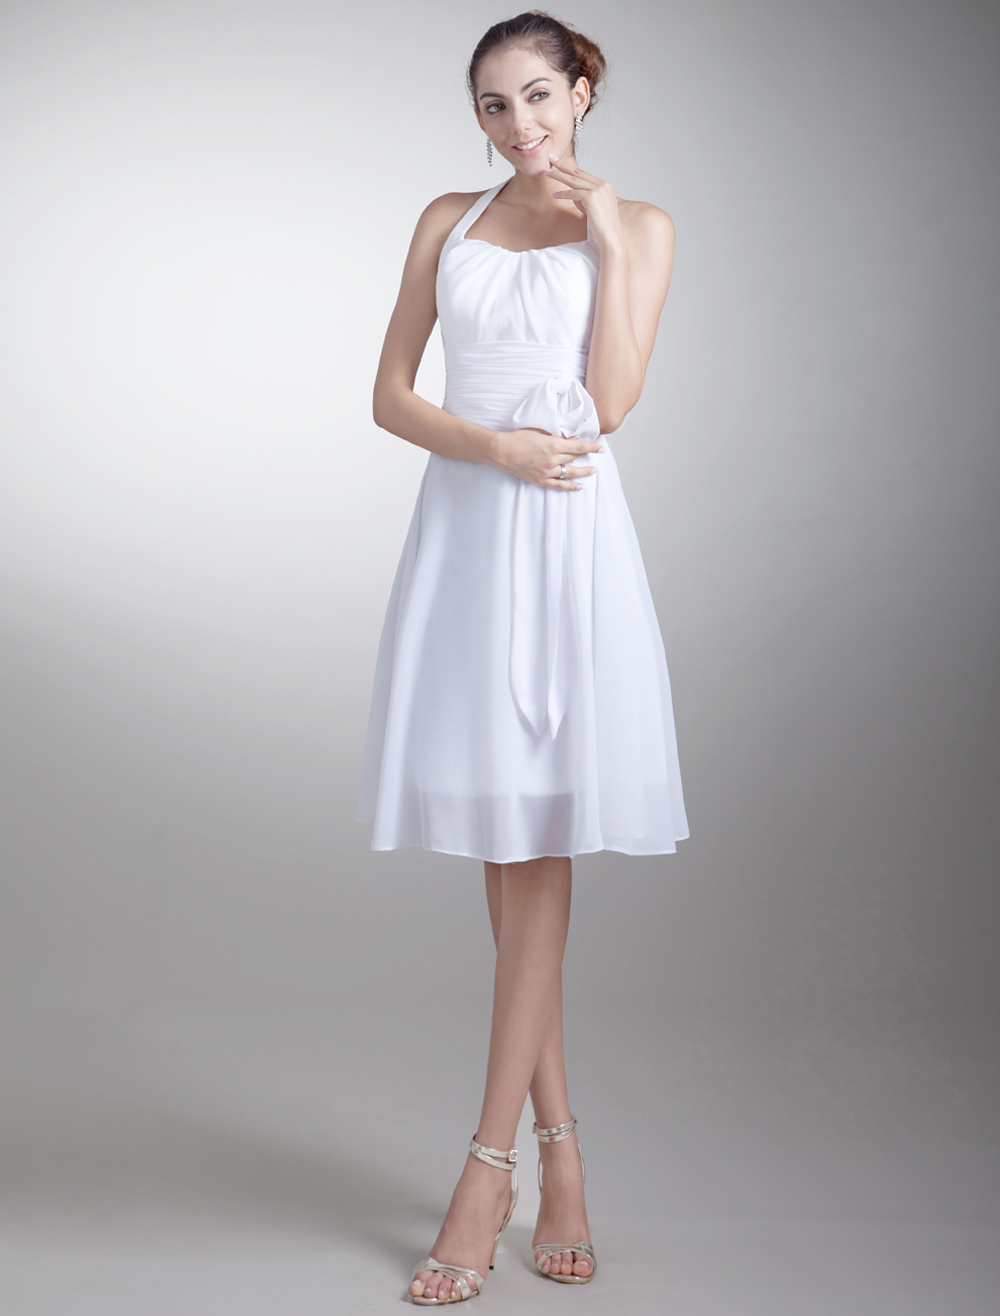 A-line White Chiffon Sash Halter Knee-Length Wedding Bridesmaid Dress